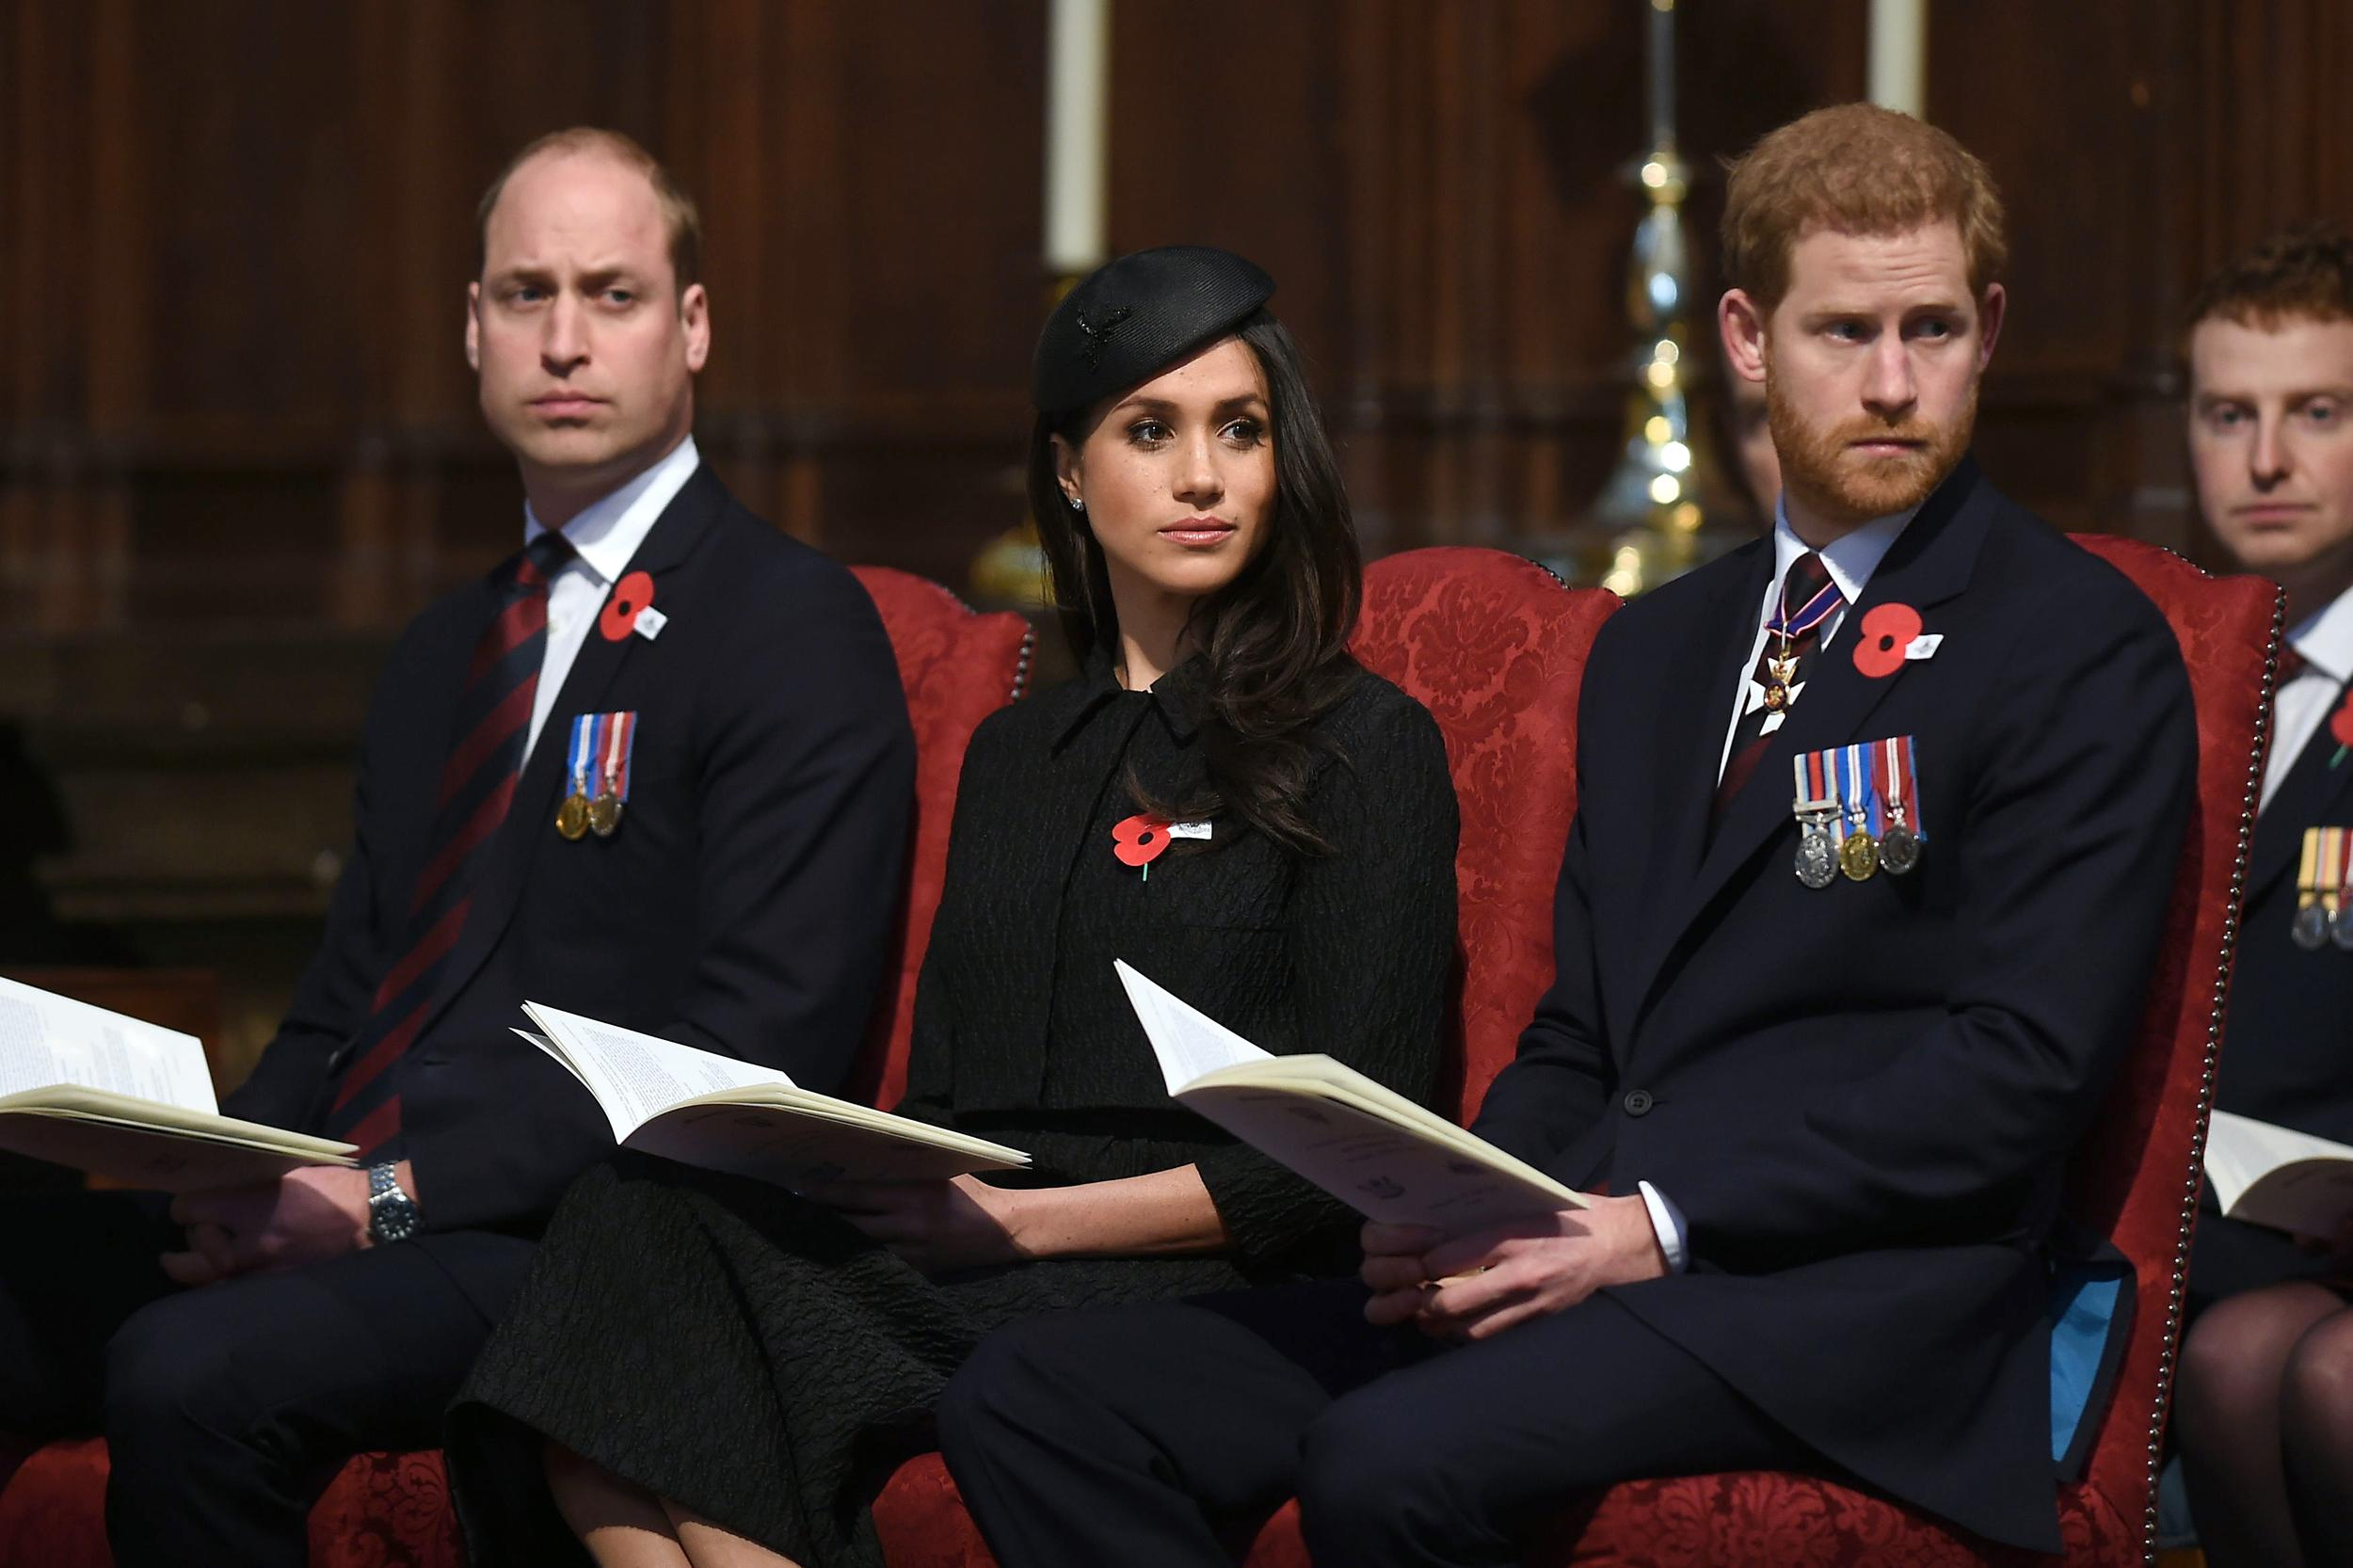 Prince William (left), Meghan Markle and Prince Harry during the annual Service of Commemoration and Thanksgiving at Westminster Abbey, London, to commemorate Anzac Day.